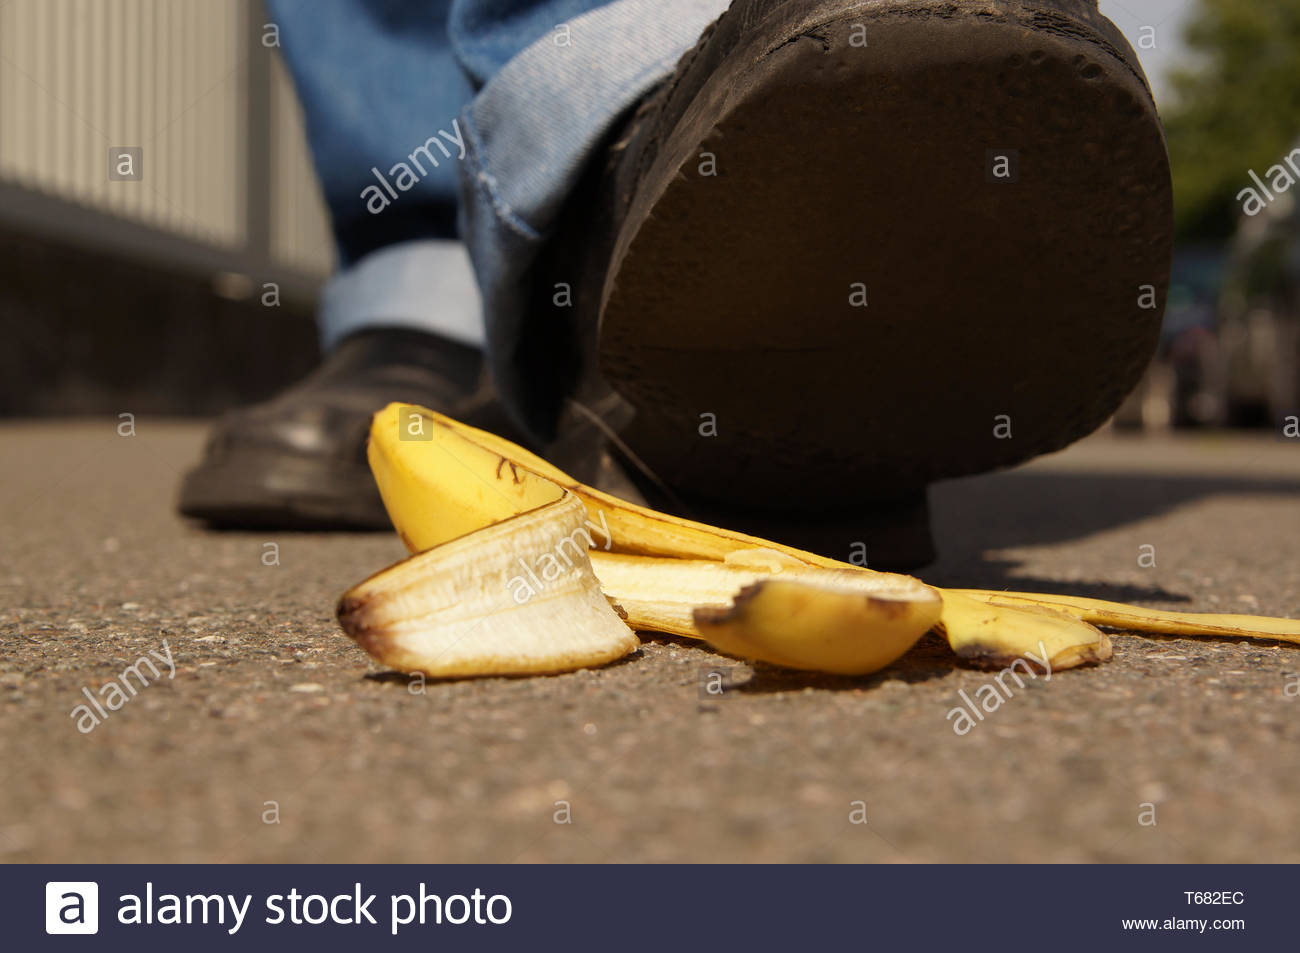 slipping on a banana peel - Stock Image